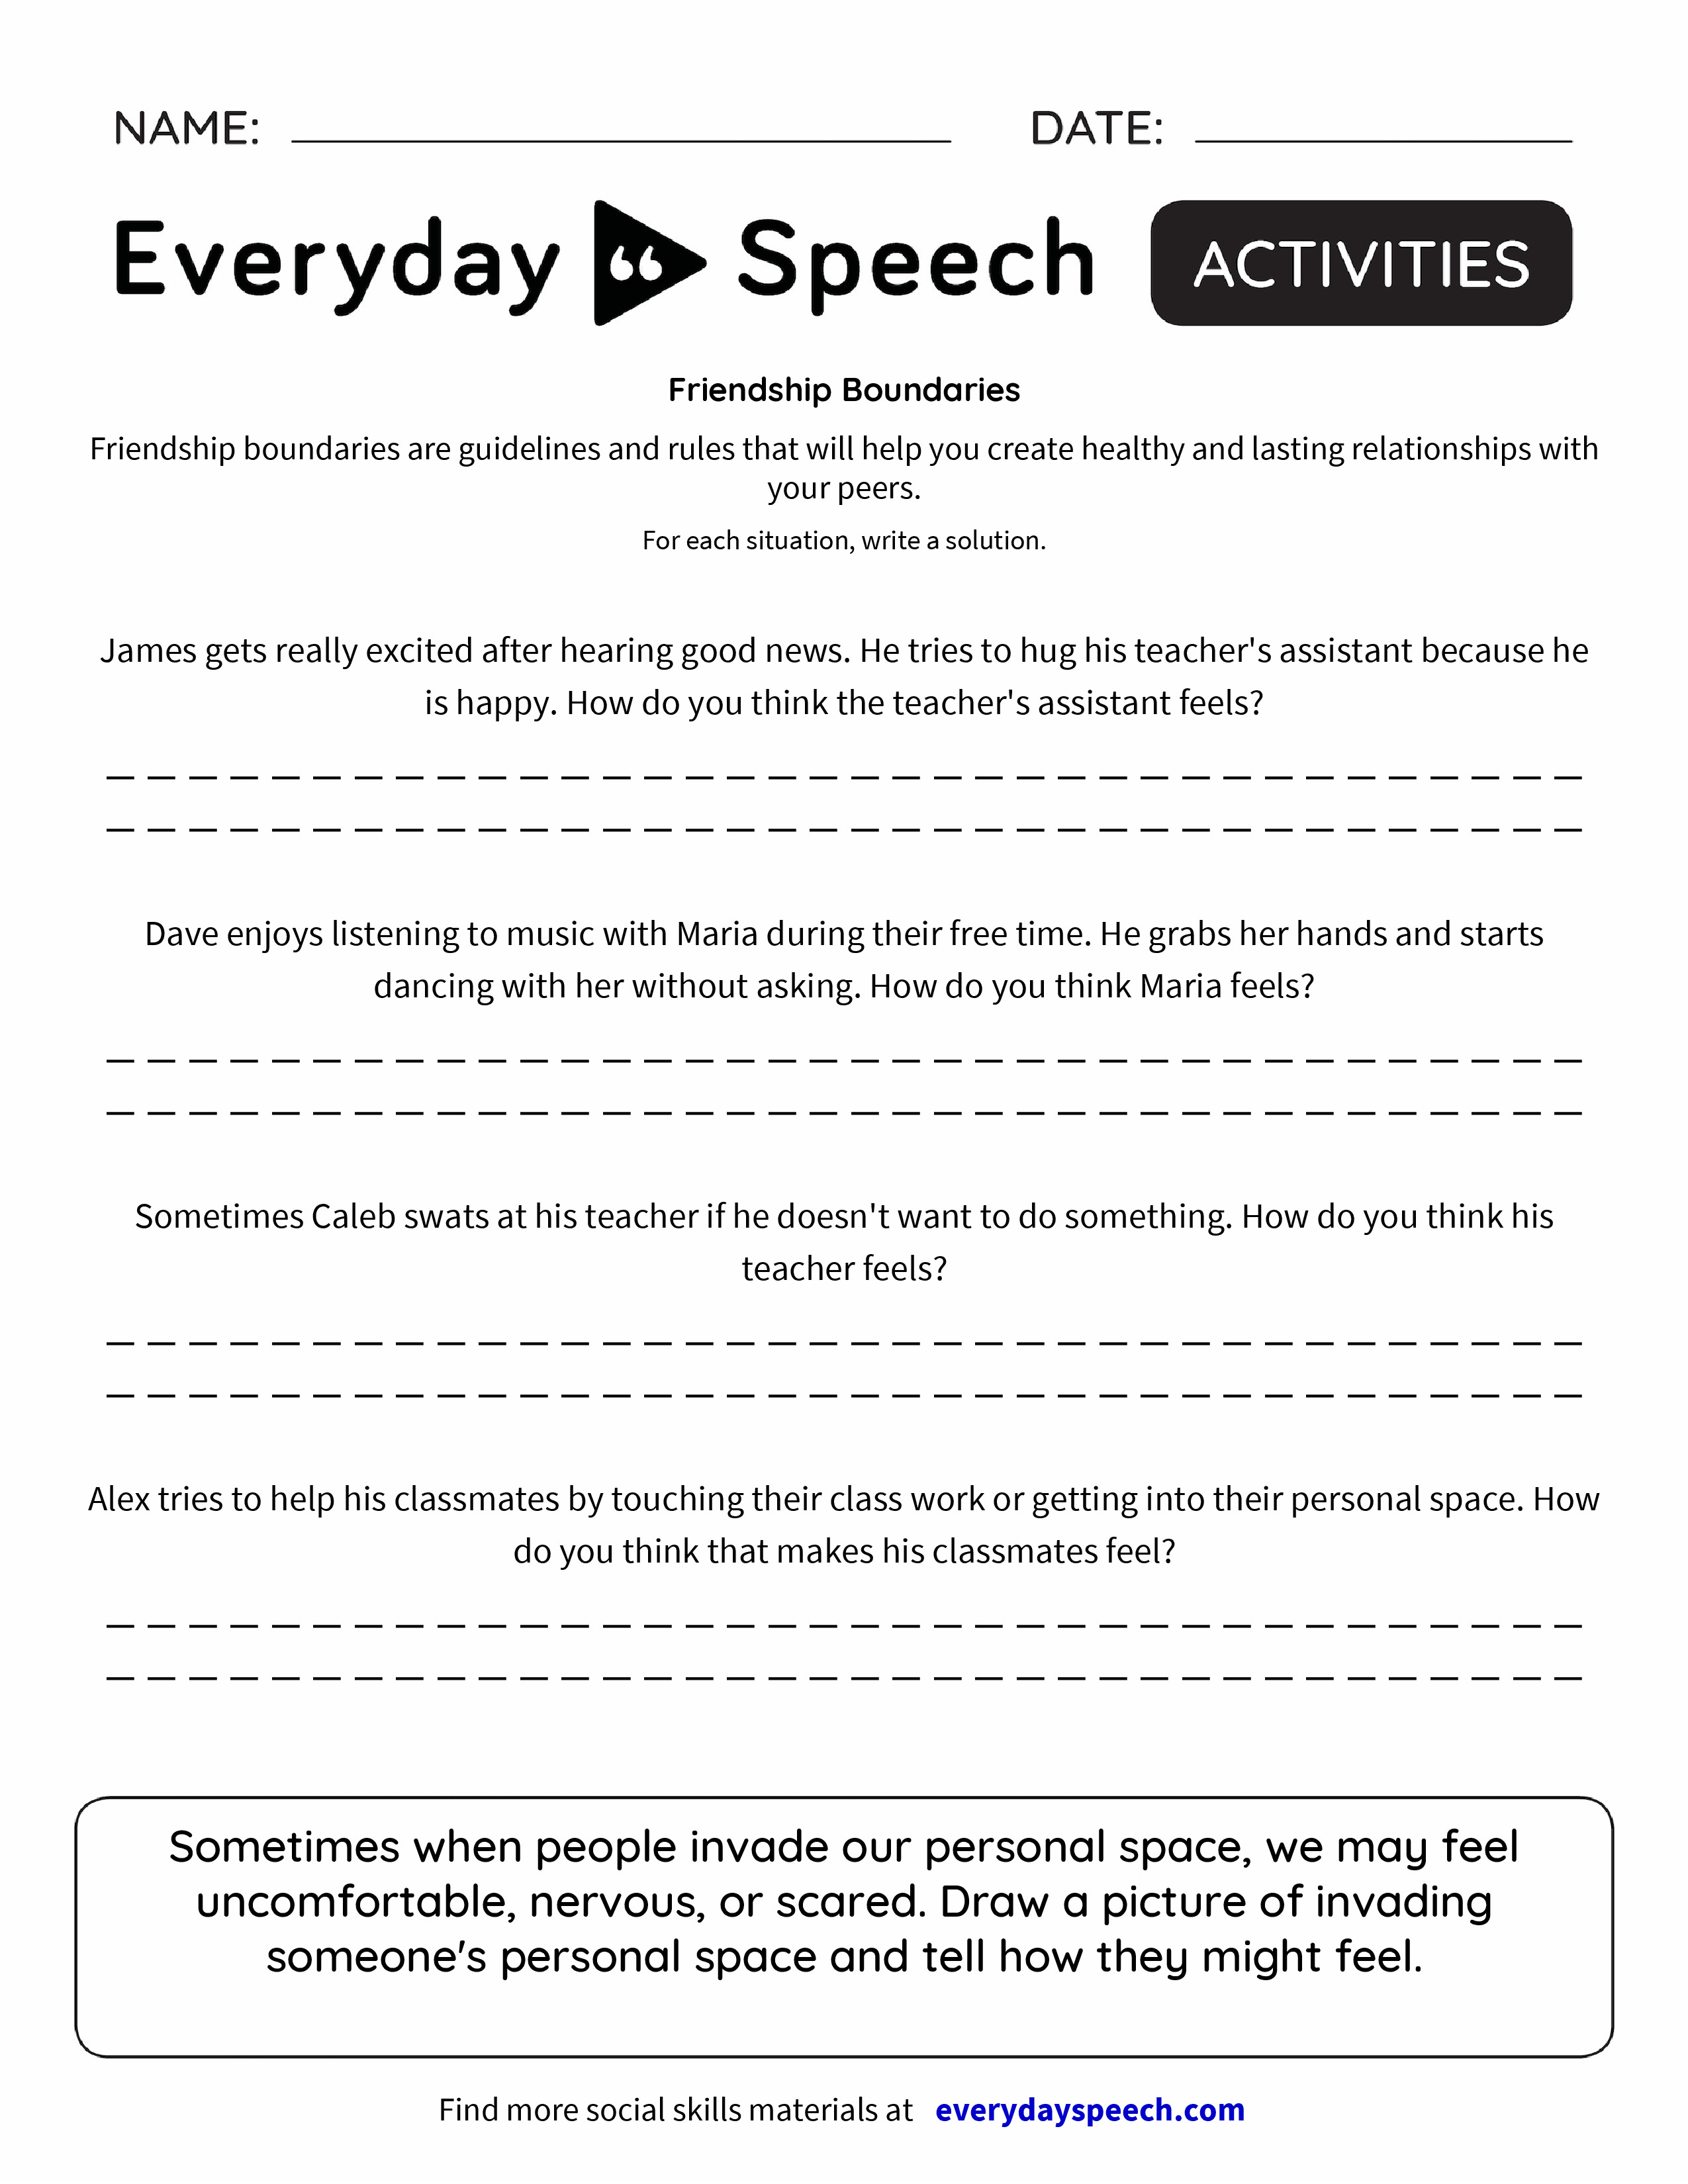 Friendship Boundaries - Everyday Speech - Everyday Speech